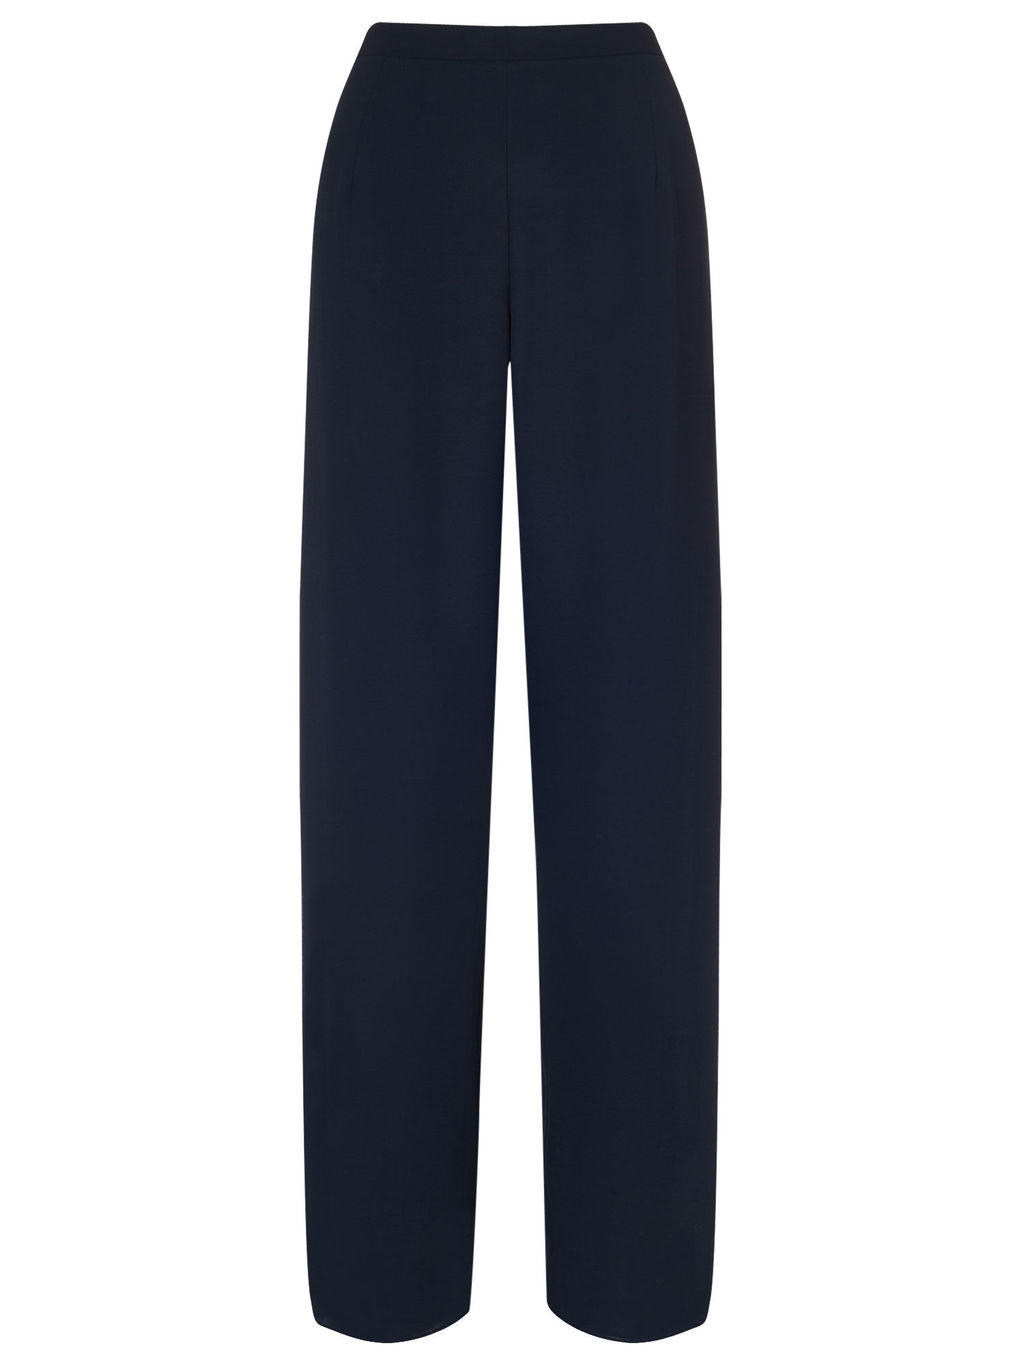 Pleated Side Chiffon Trouser - length: standard; pattern: plain; waist: high rise; predominant colour: navy; occasions: casual, creative work; fibres: polyester/polyamide - 100%; texture group: crepes; fit: wide leg; pattern type: fabric; style: standard; season: a/w 2015